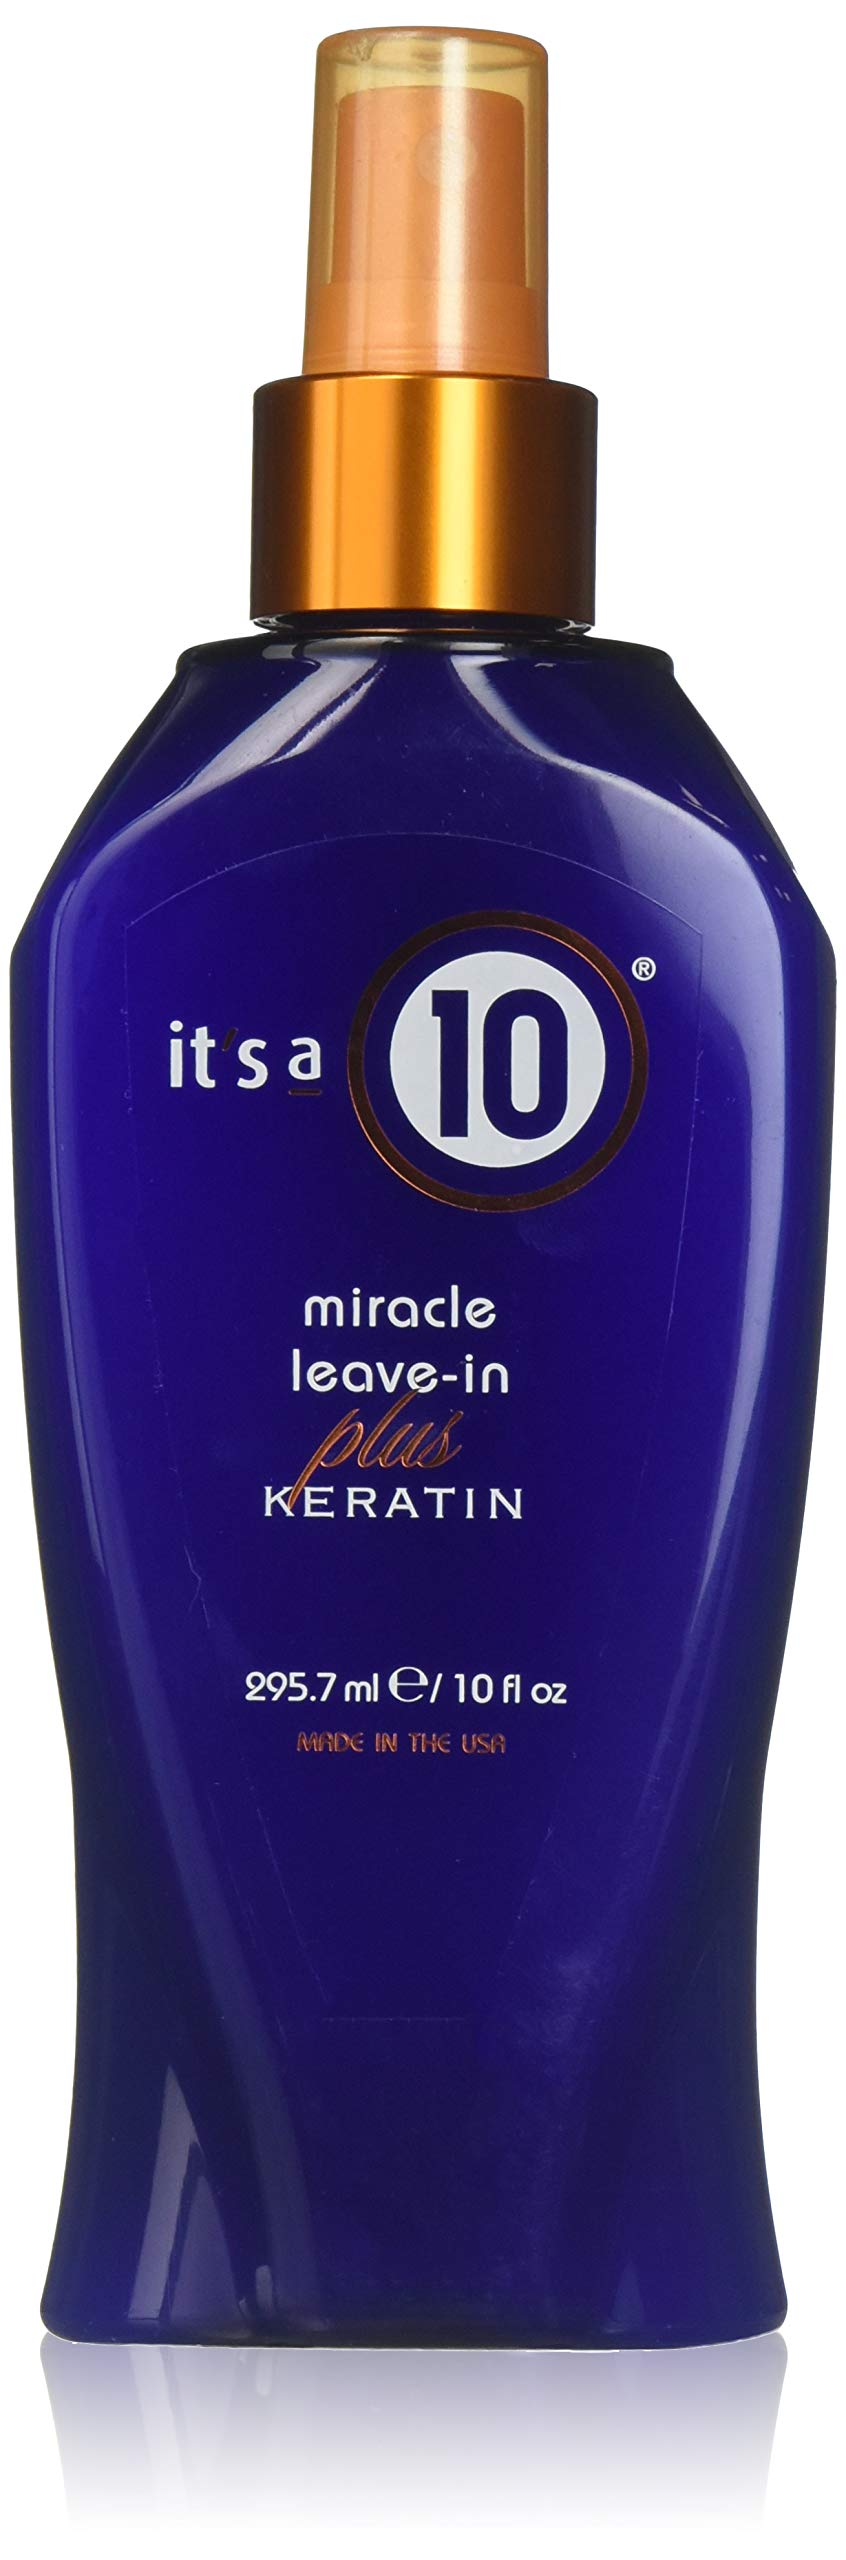 ITS A 10 by It's a 10 MIRACLE LEAVE IN PLUS KERATIN 10 OZ ( Package Of 2 ) by It's a 10 (Image #1)